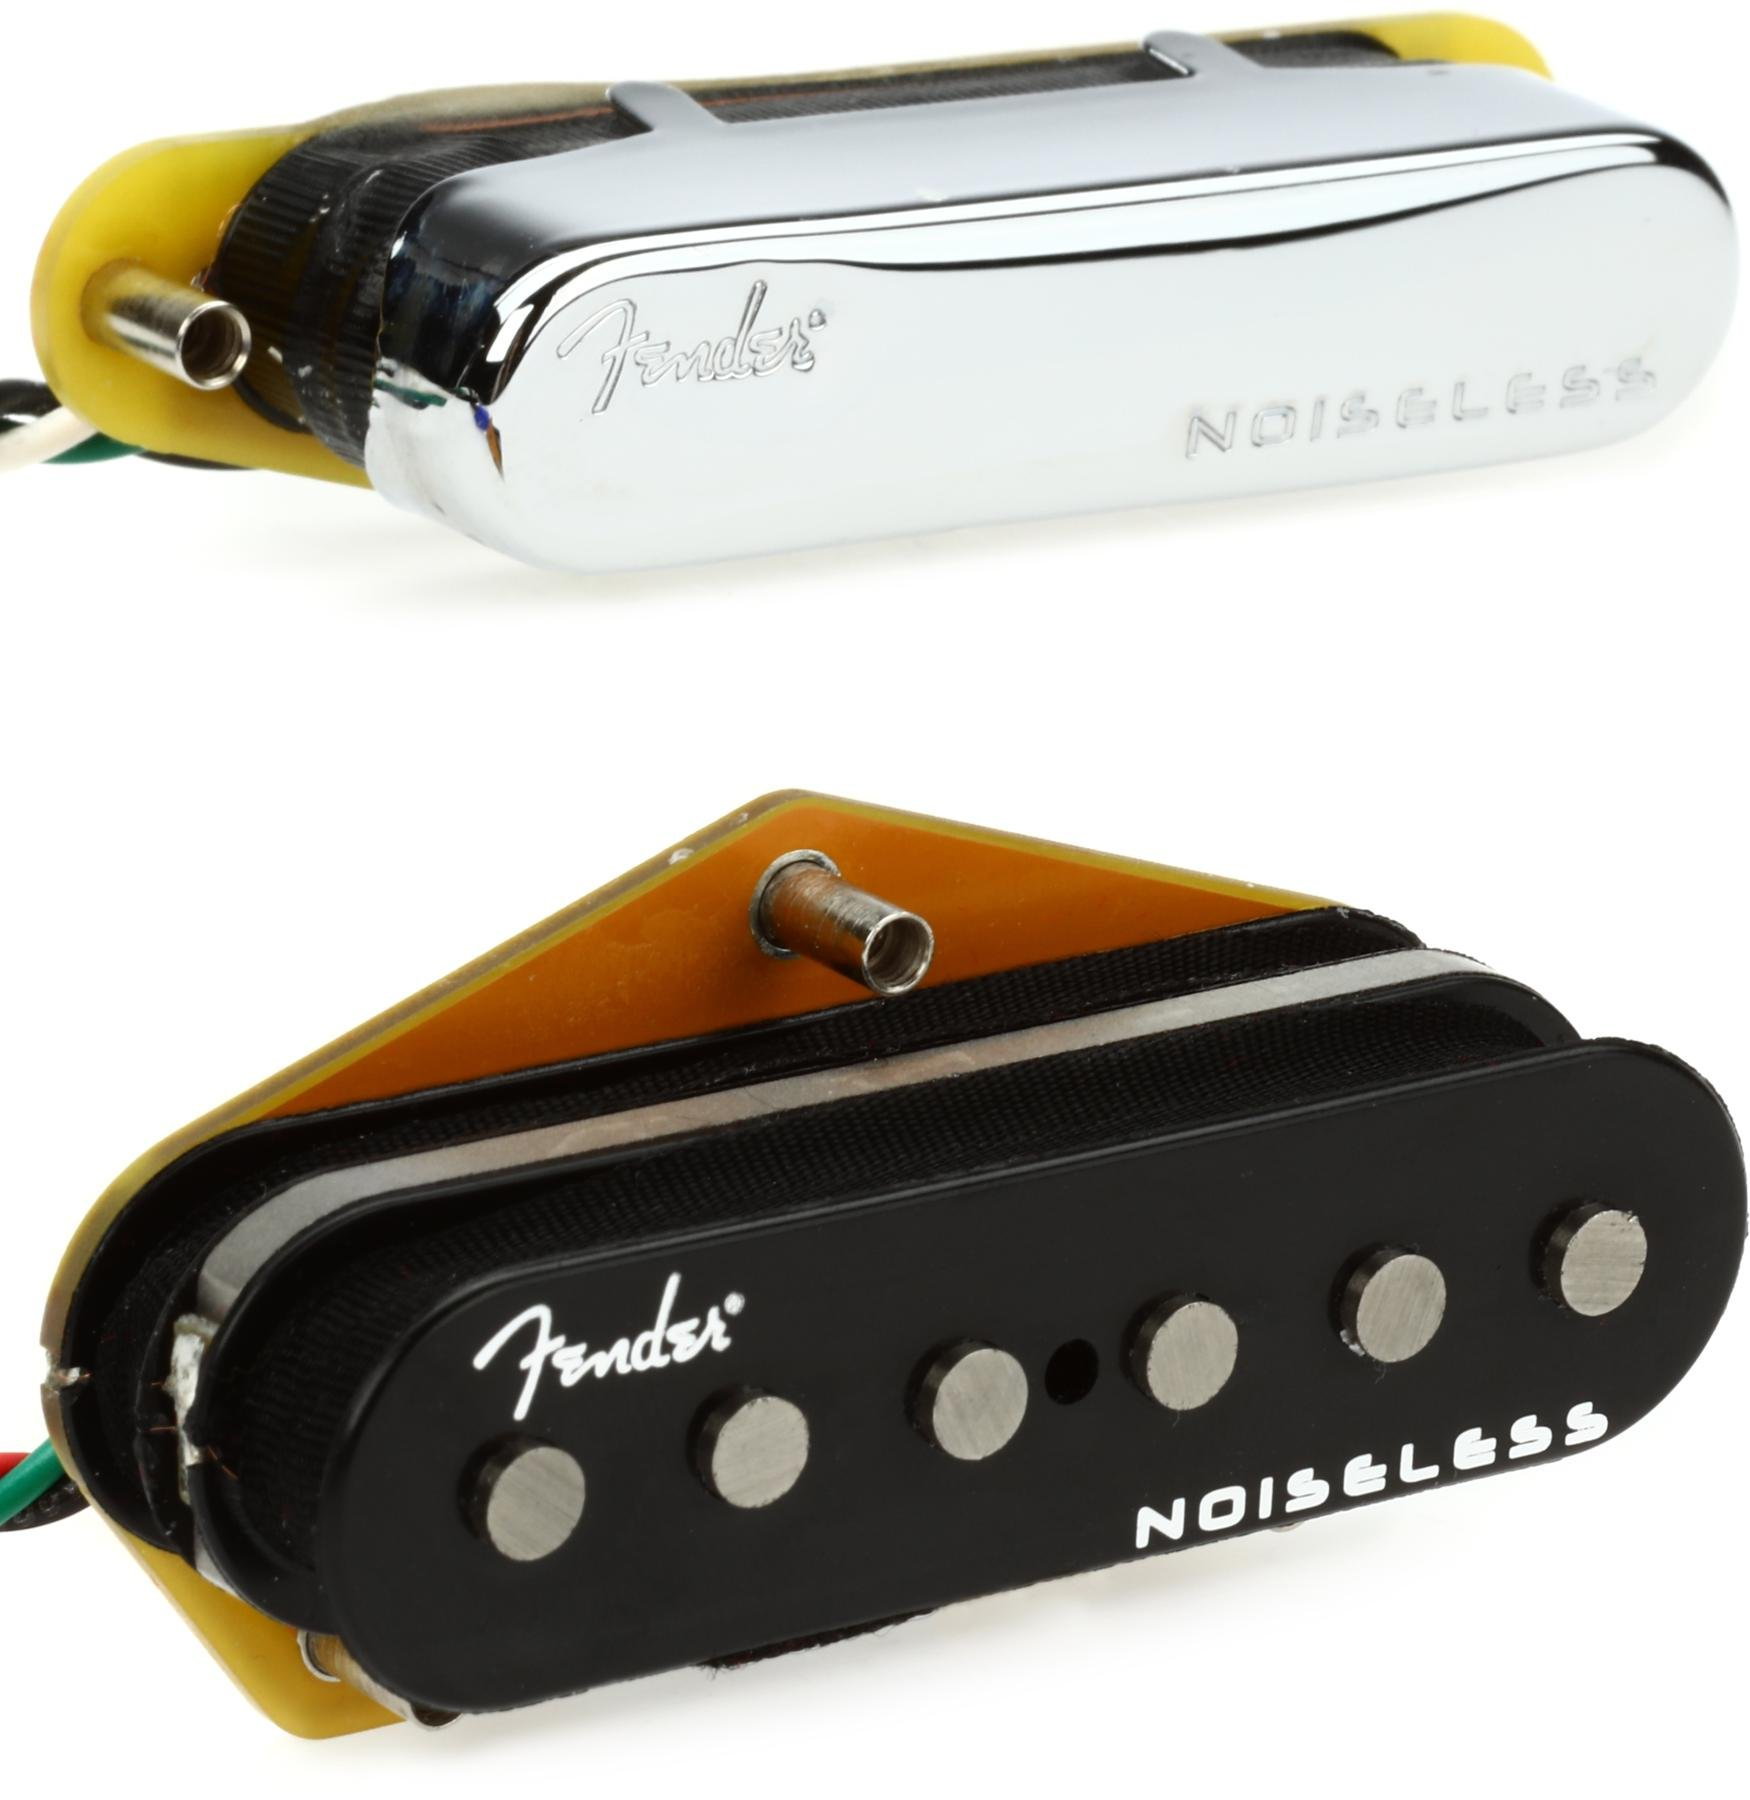 Fender Noiseless Telecaster Pickups Wiring Diagram from media.sweetwater.com